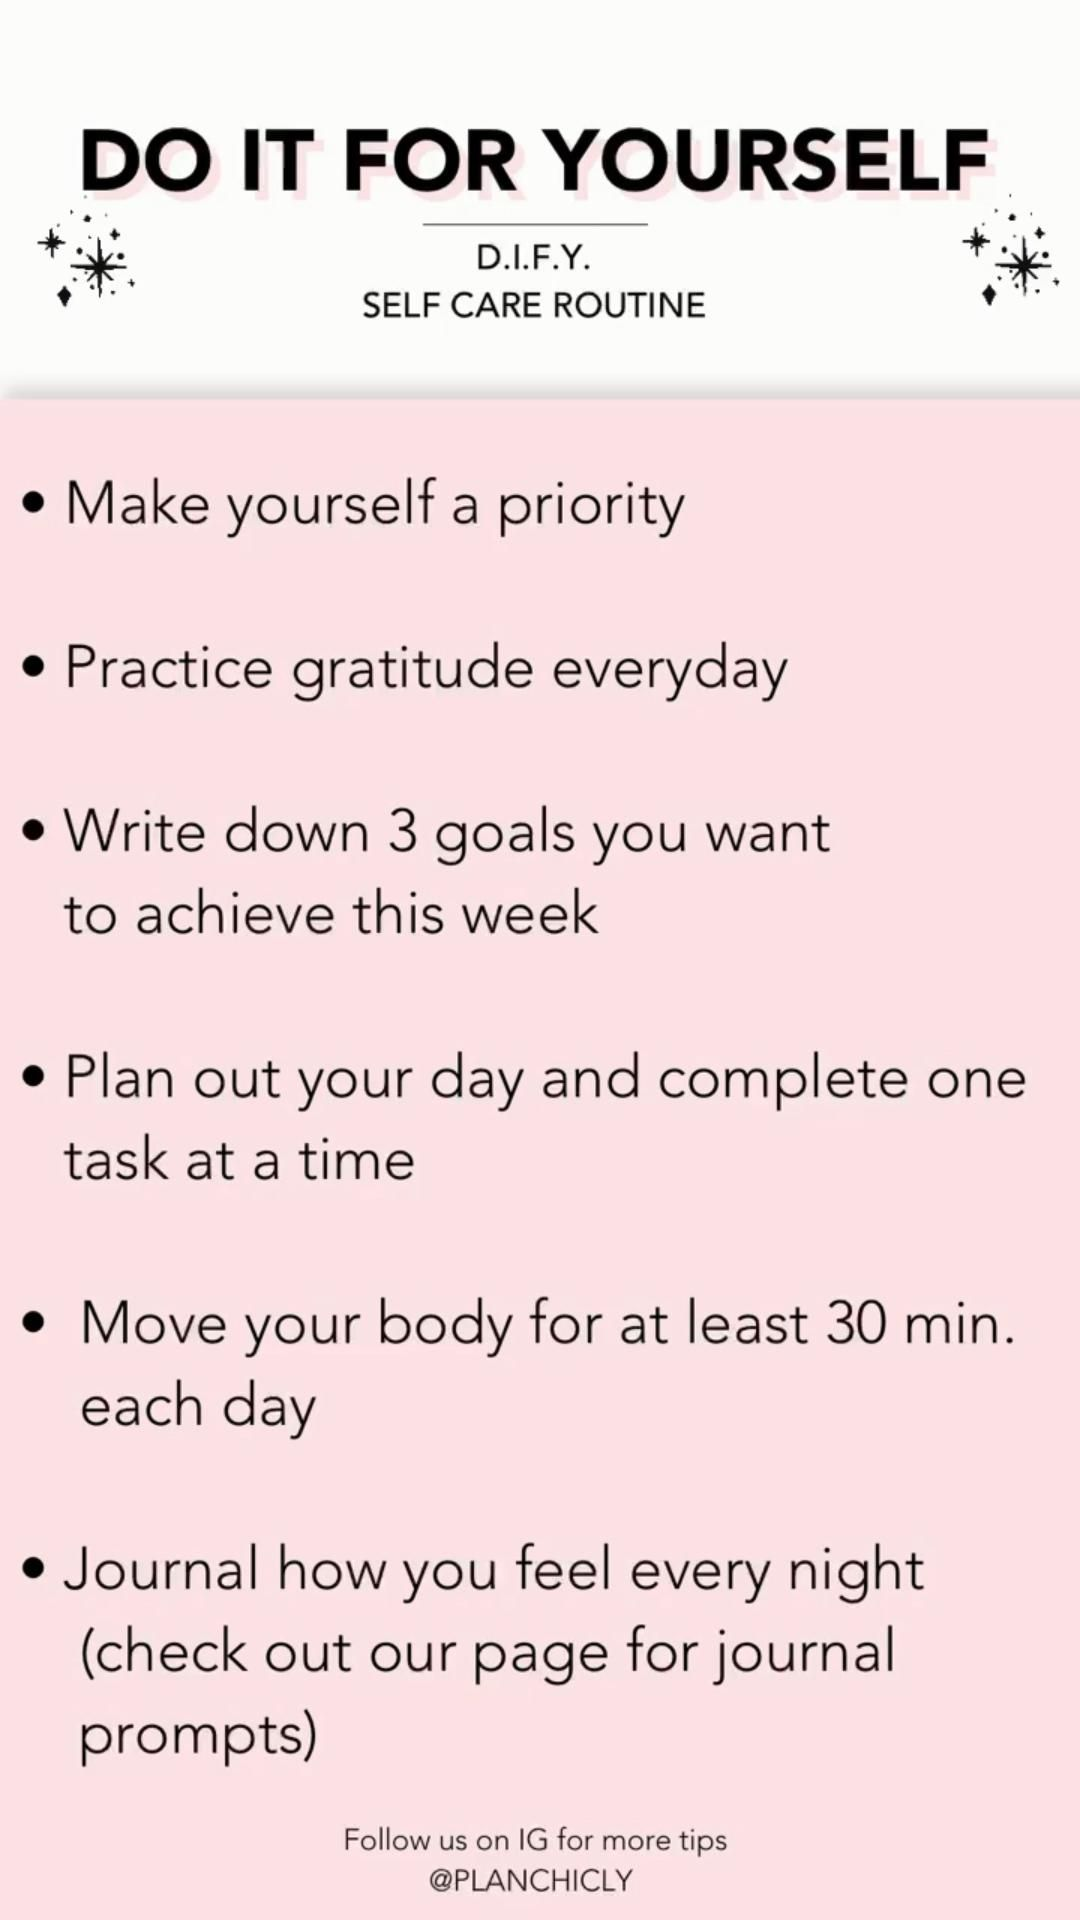 Daily Self Care Routine: Do It For Yourself